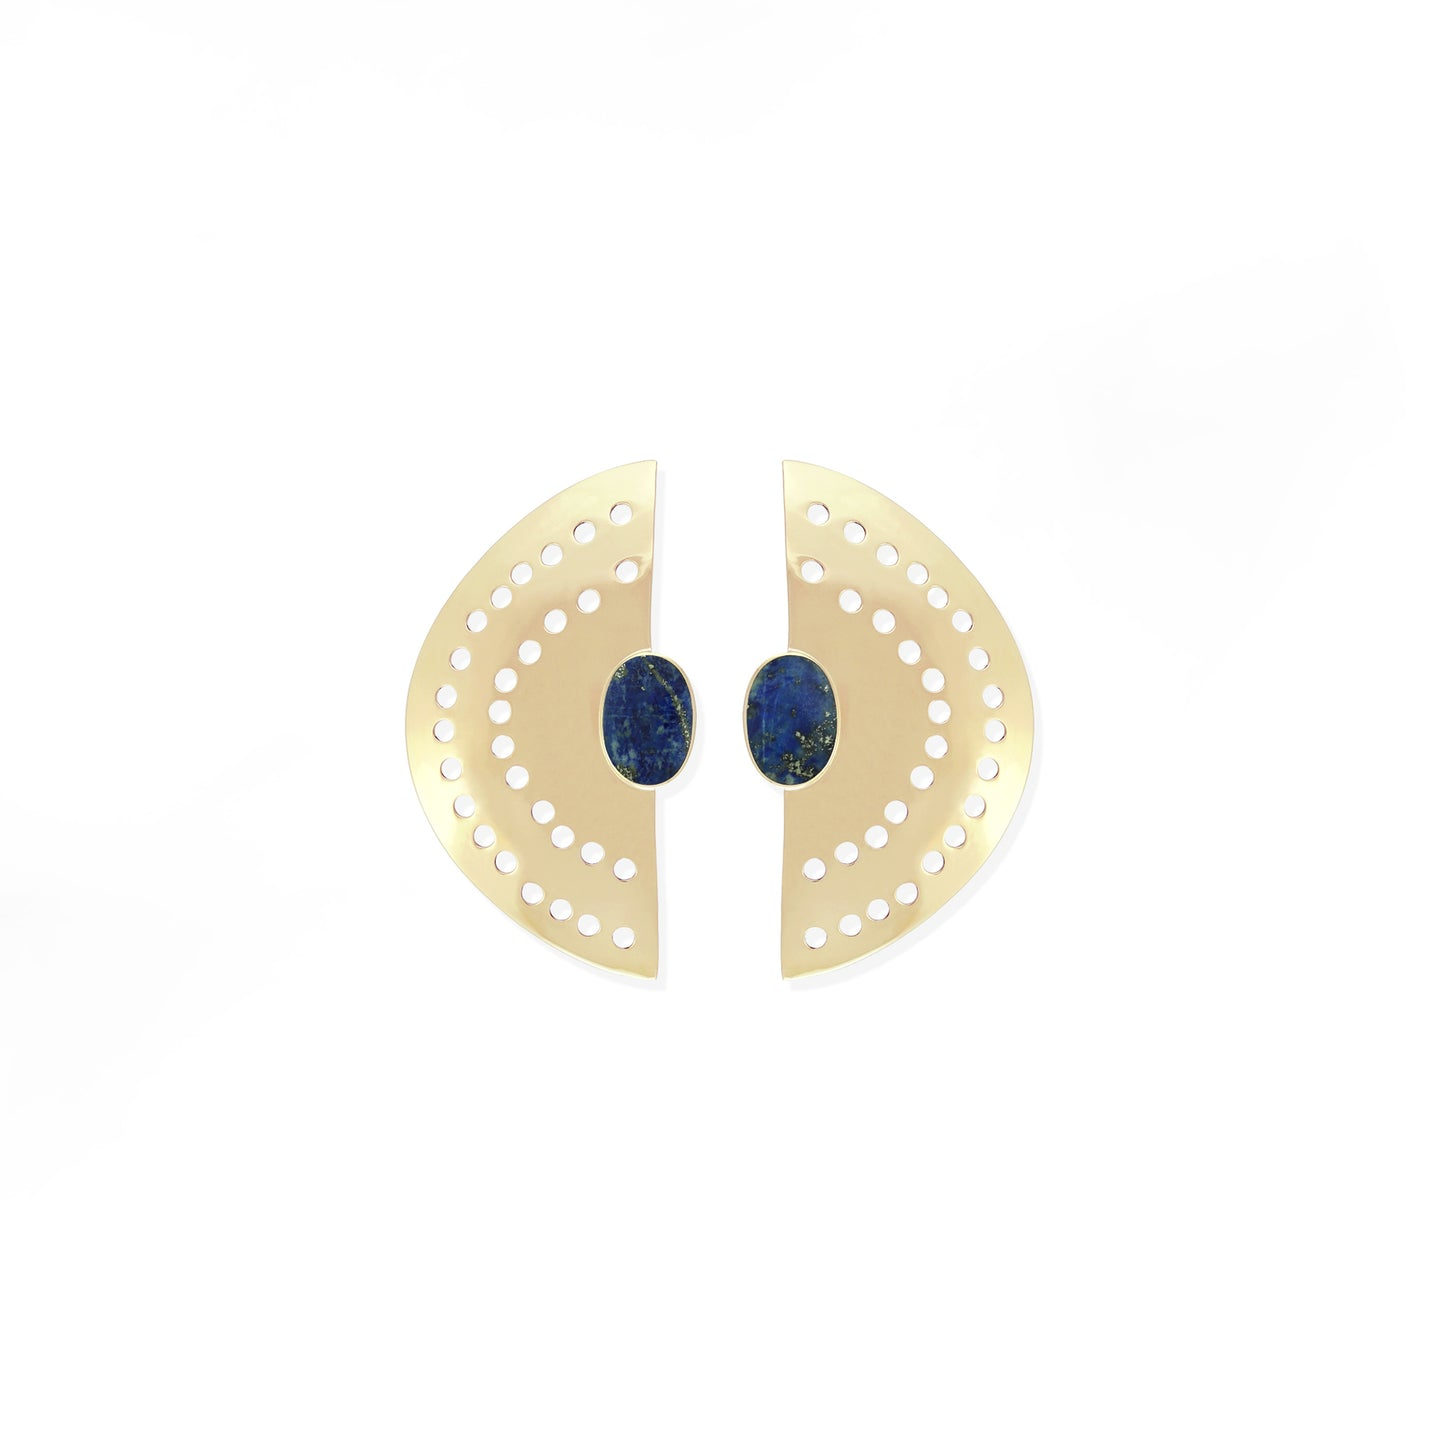 Vintage Half Moon Earrings - Lapis